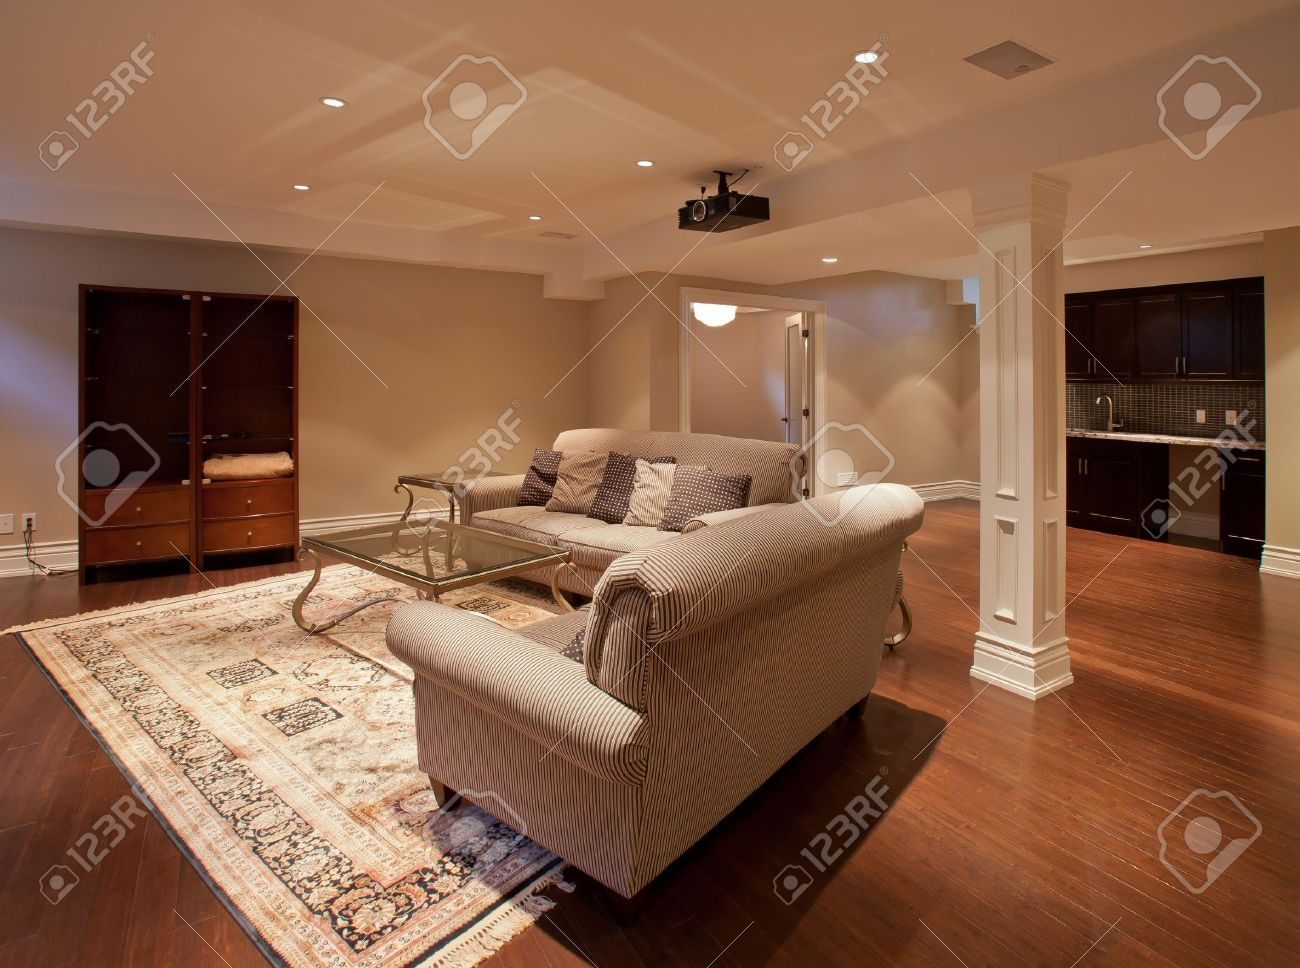 Basement entertainment room - Modern Home Entertainment Room In The Basement Stock Photo 10907508